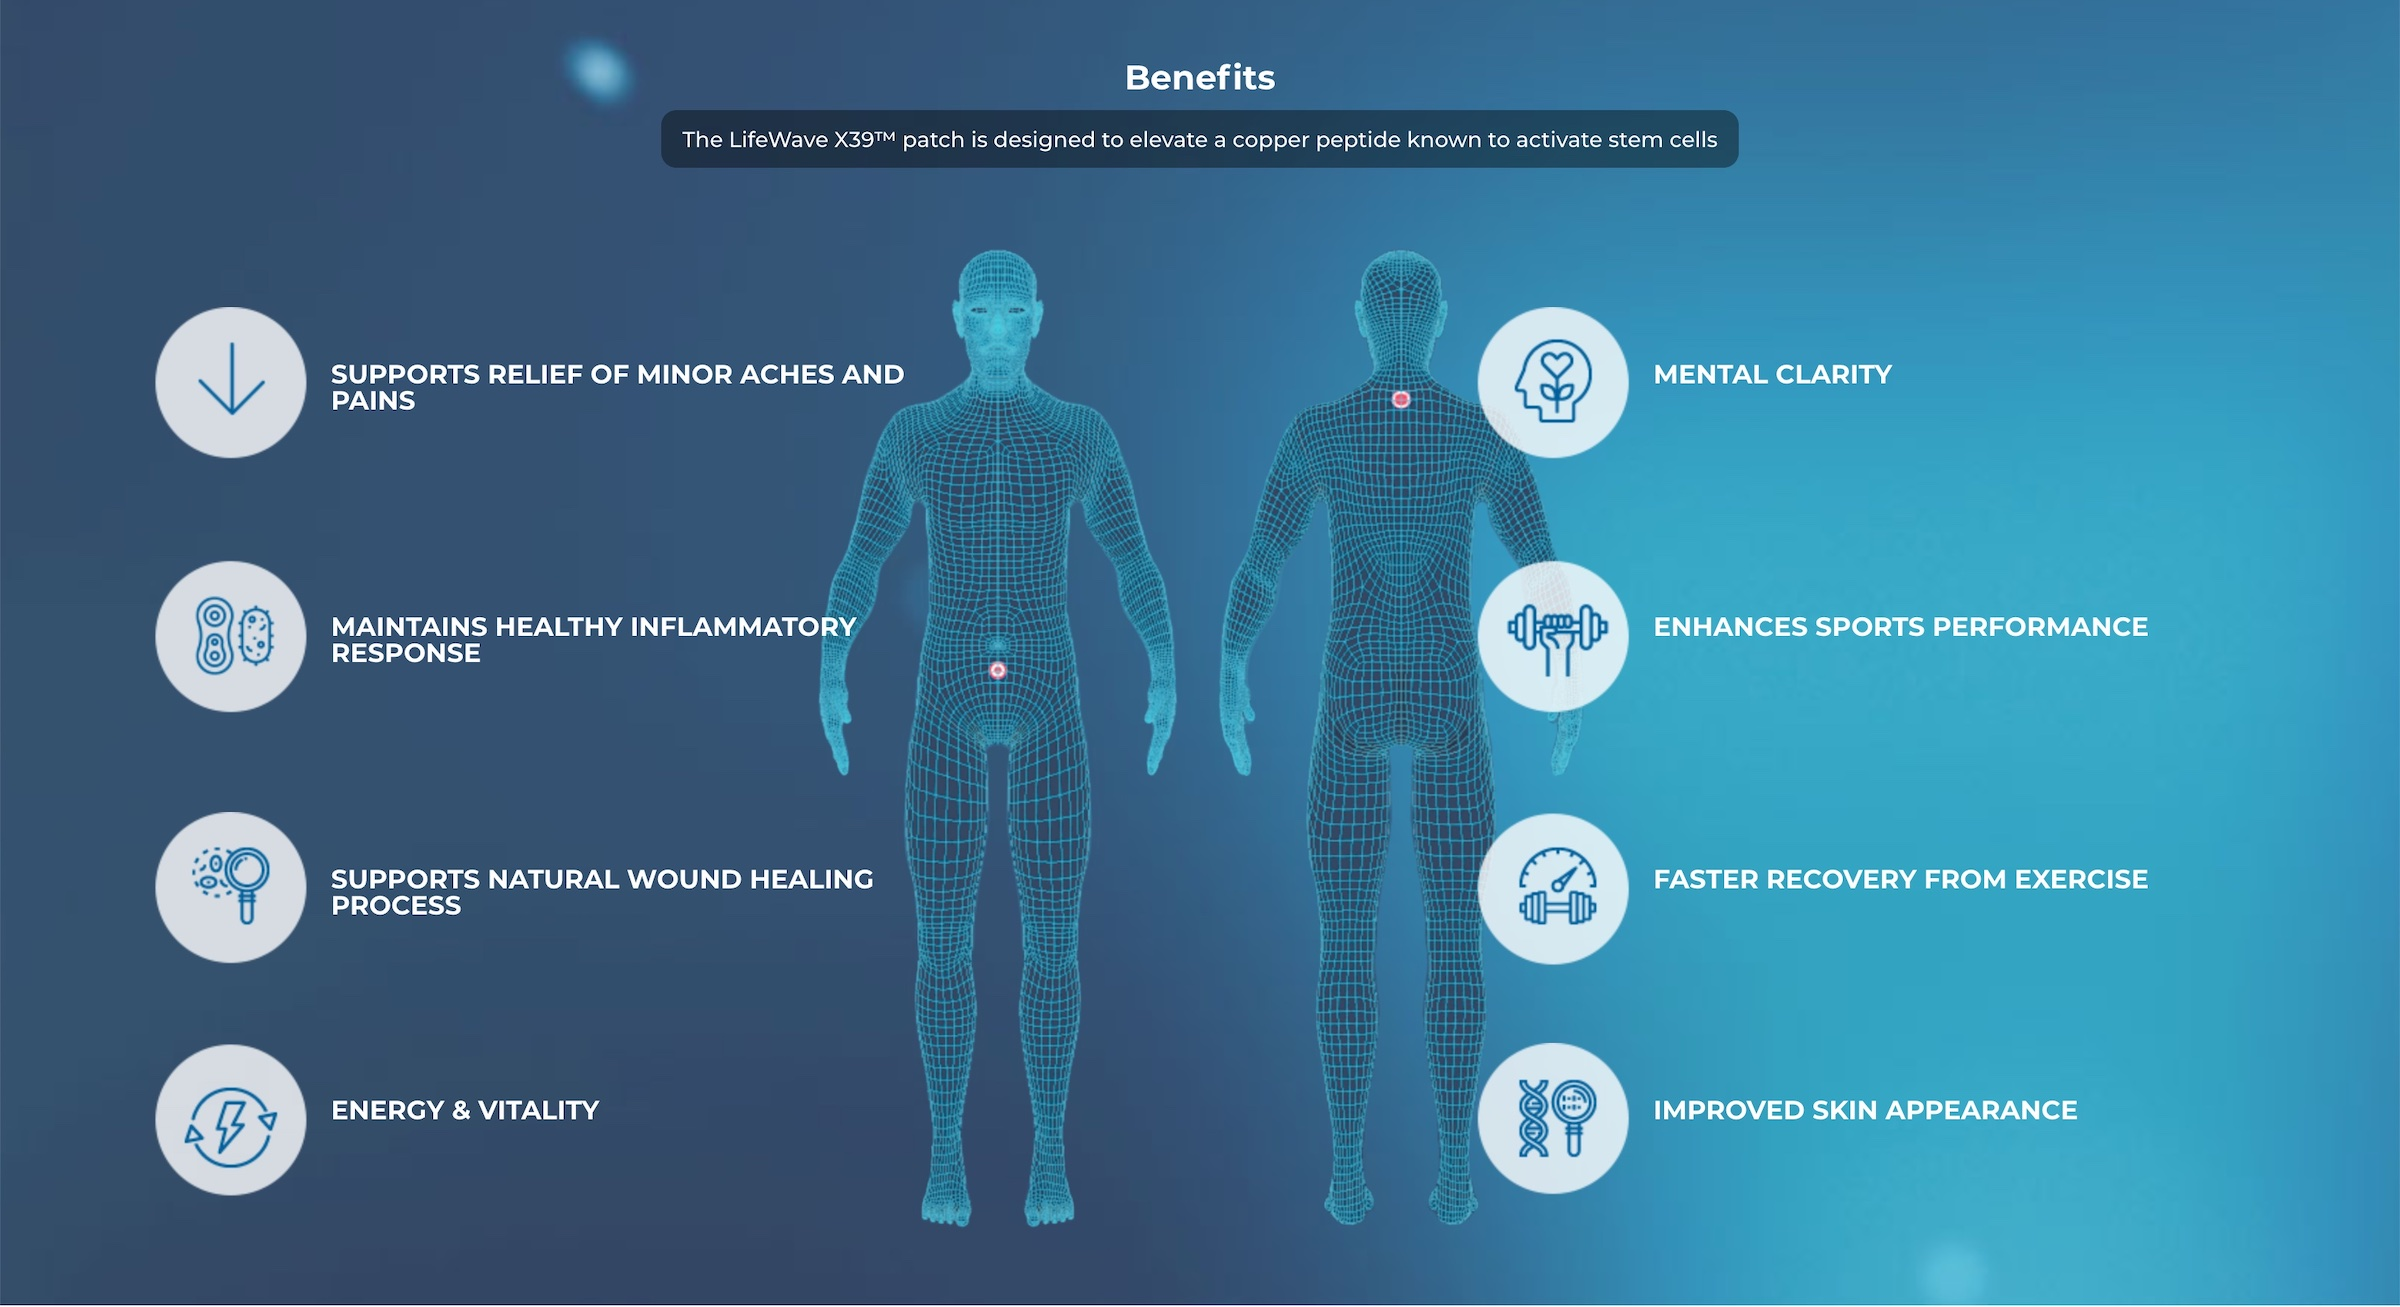 Benefits of using LifeWave X39 Stem Cell Activating patches | LifeWave